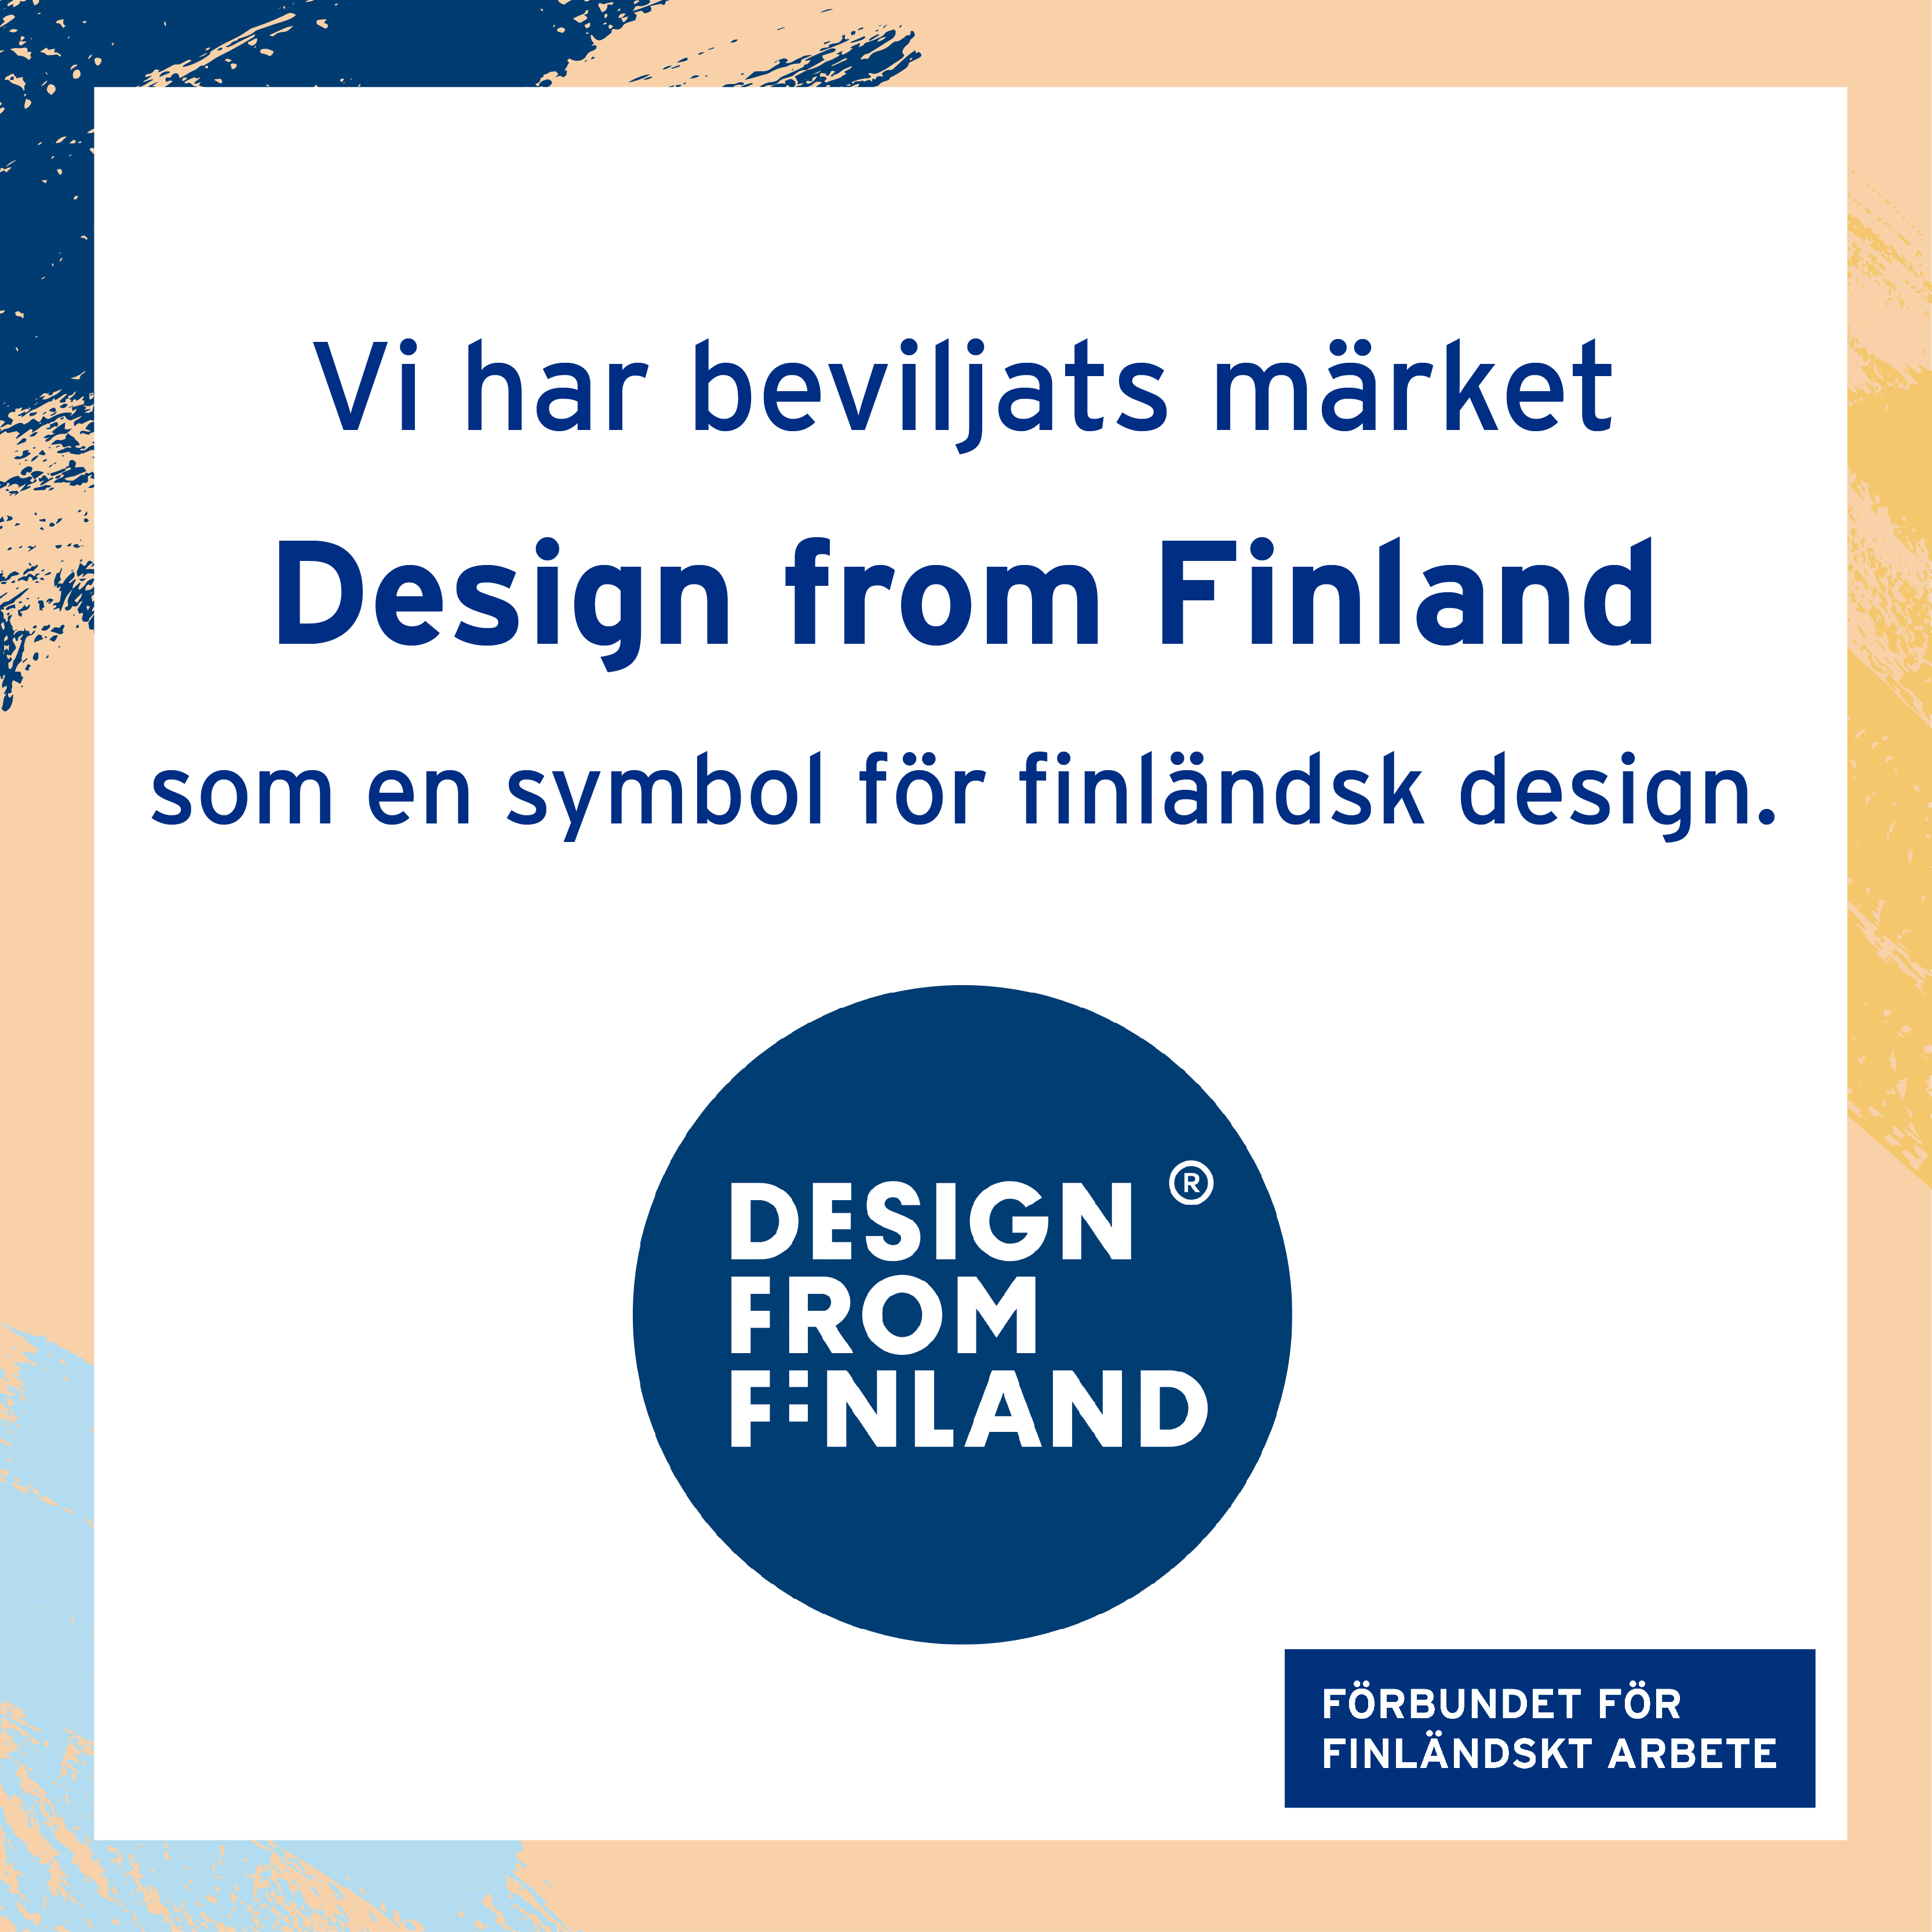 Design from Finland mark